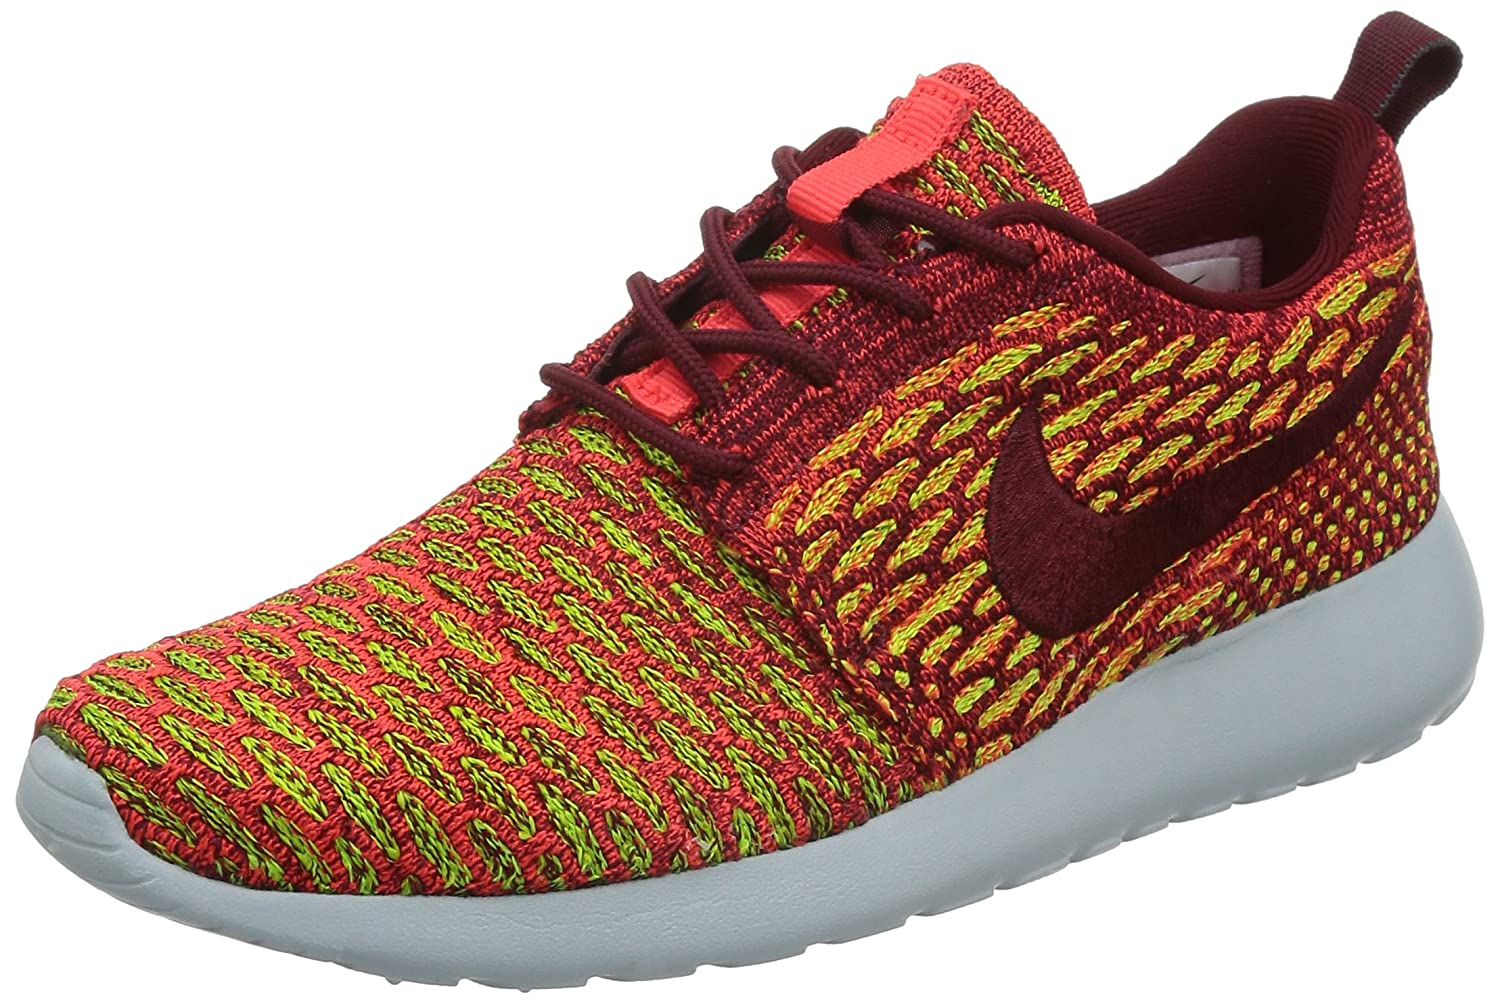 NIKE Womens Roshe One Flyknit Flyknit Colorblock Running Shoes B01714NVDA 7 B(M) US|Team Red/Team Red-bright Crimson-volt